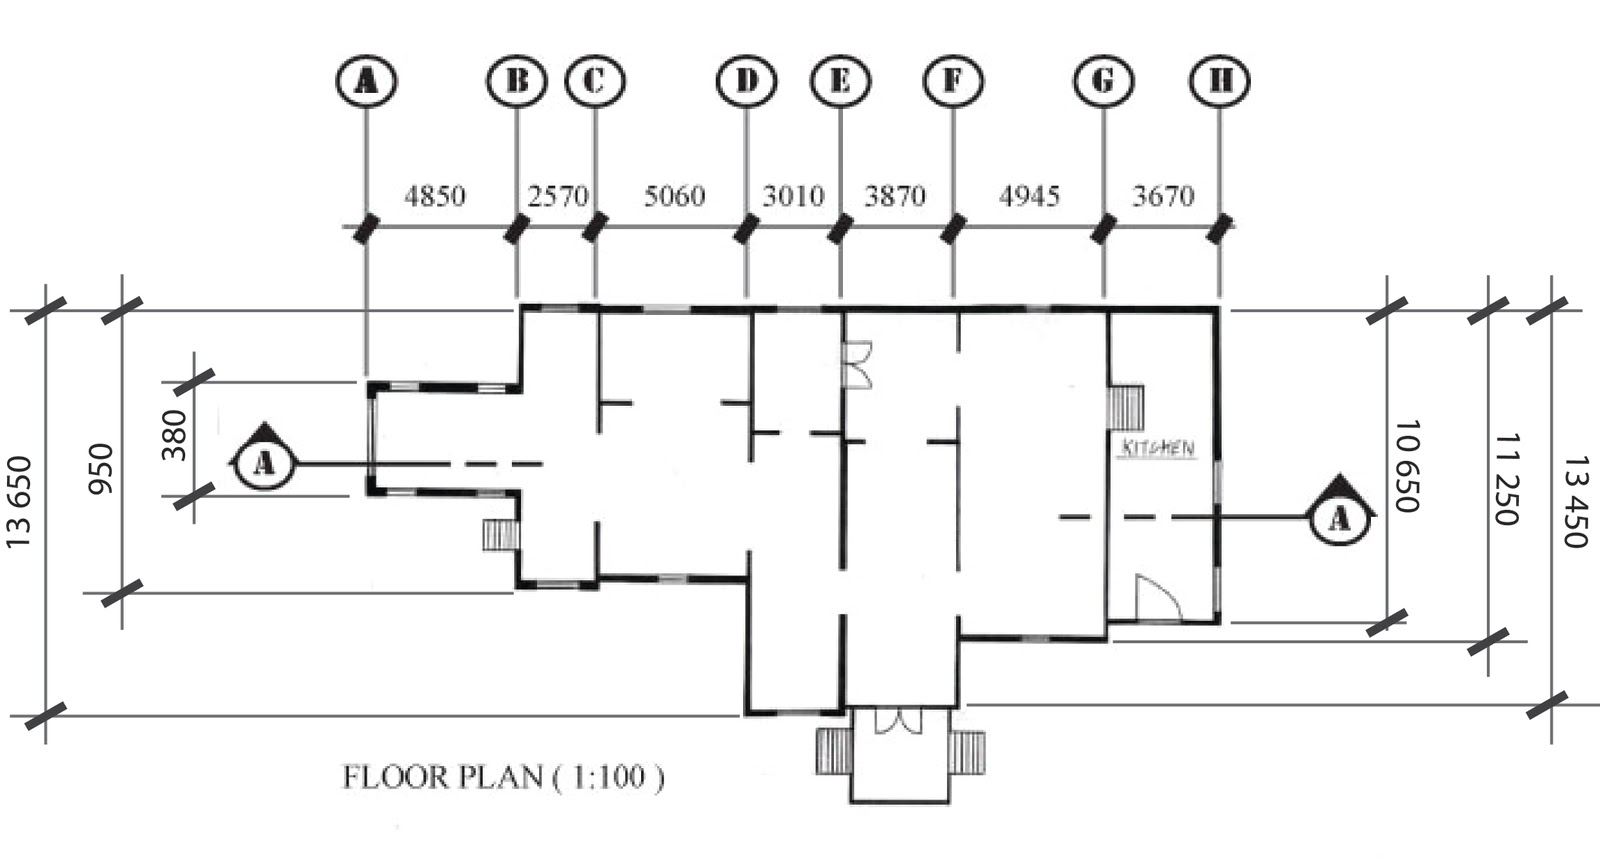 Exploring The Different Buildings Floorplan Of A